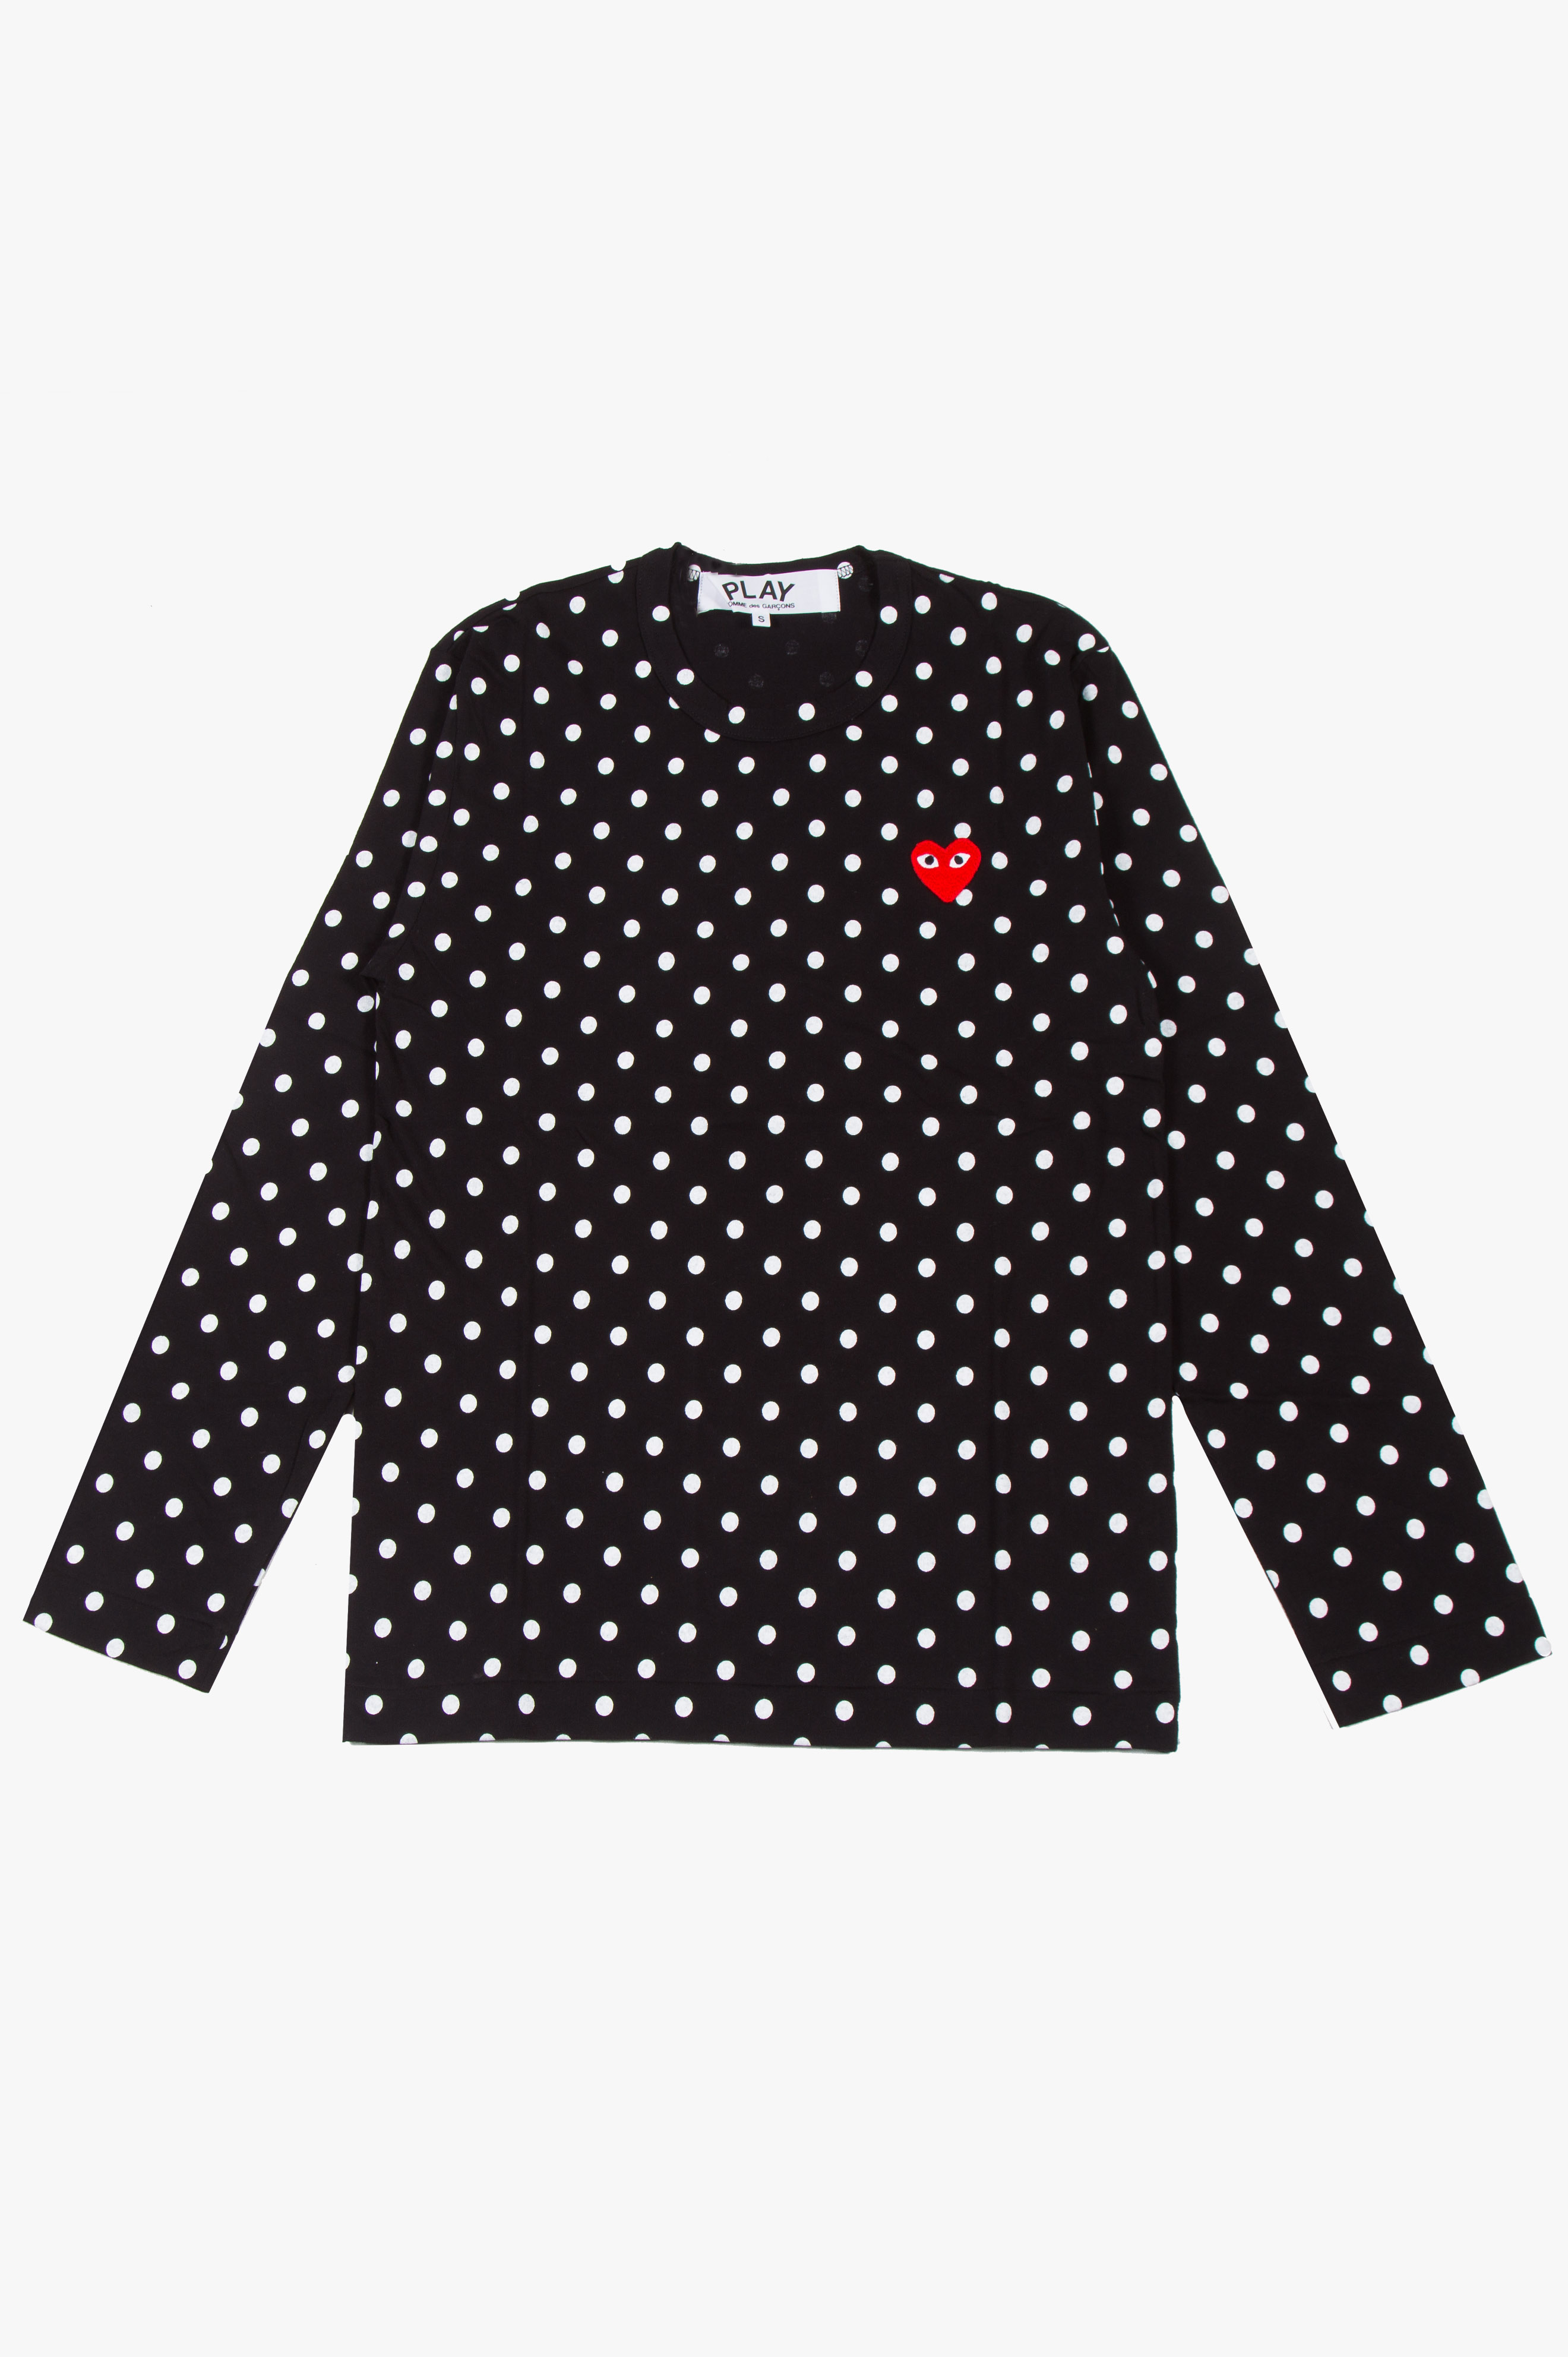 Polka Dot Long Sleeve Black